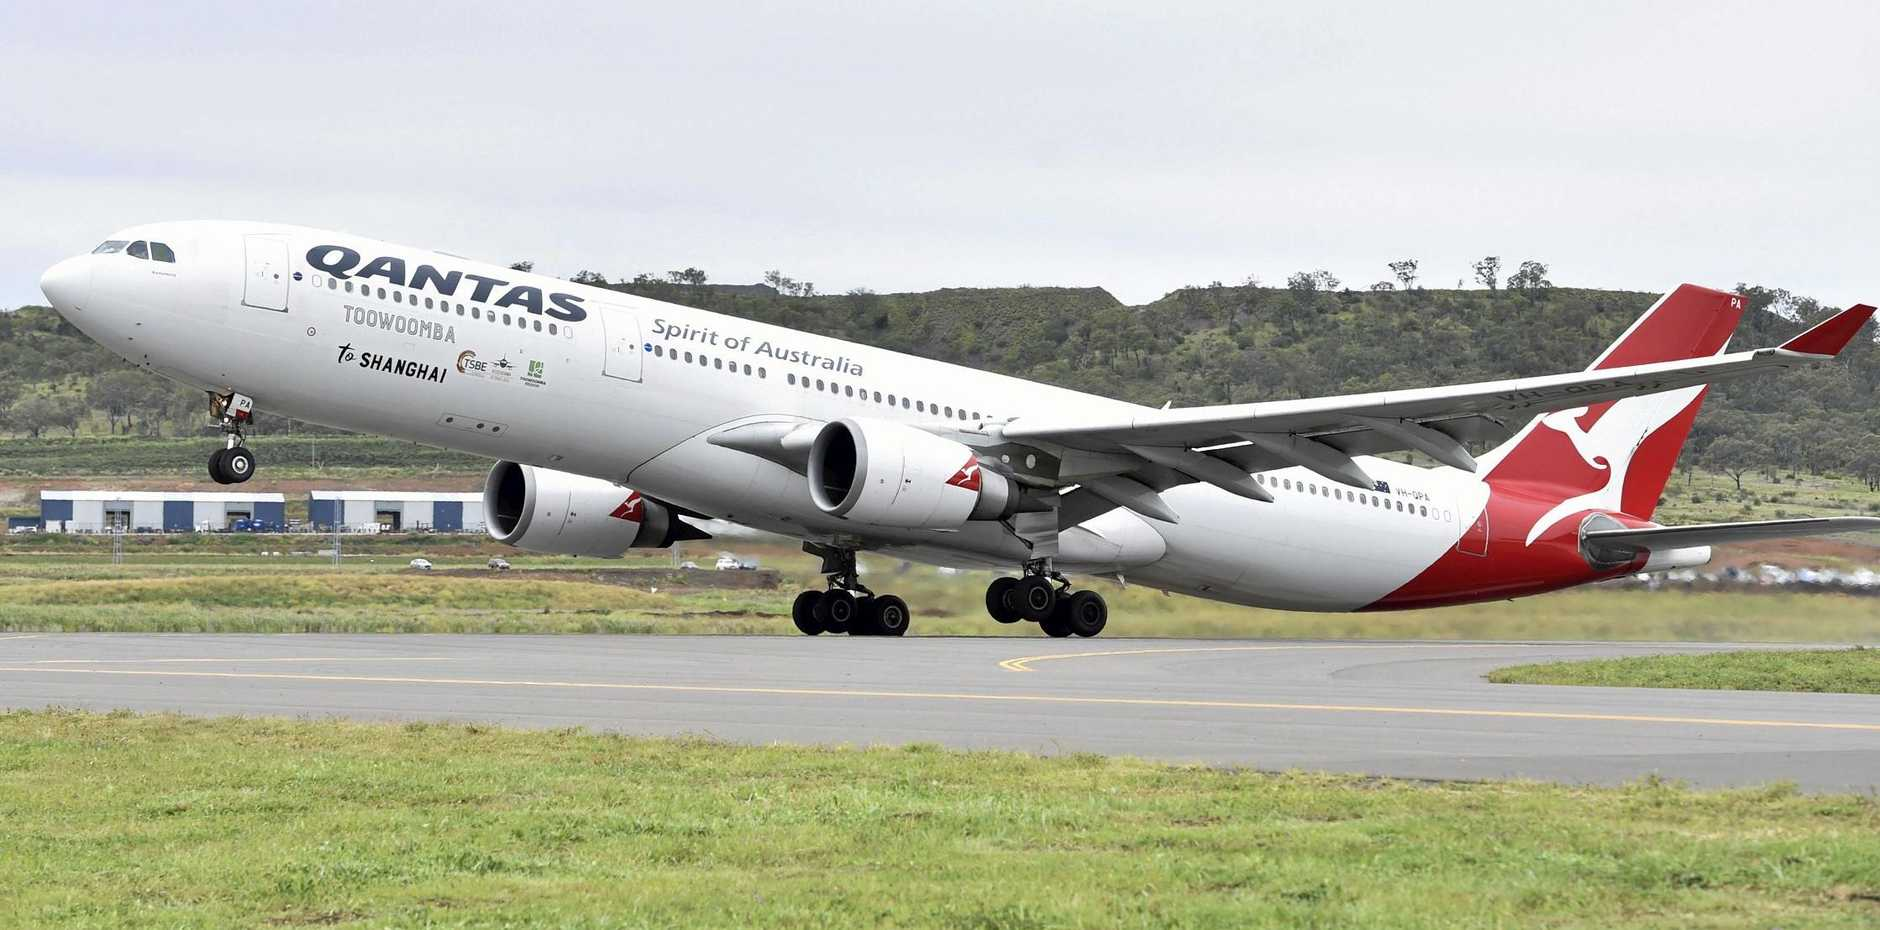 A Qantas plane takes off from Wellcamp Airport.